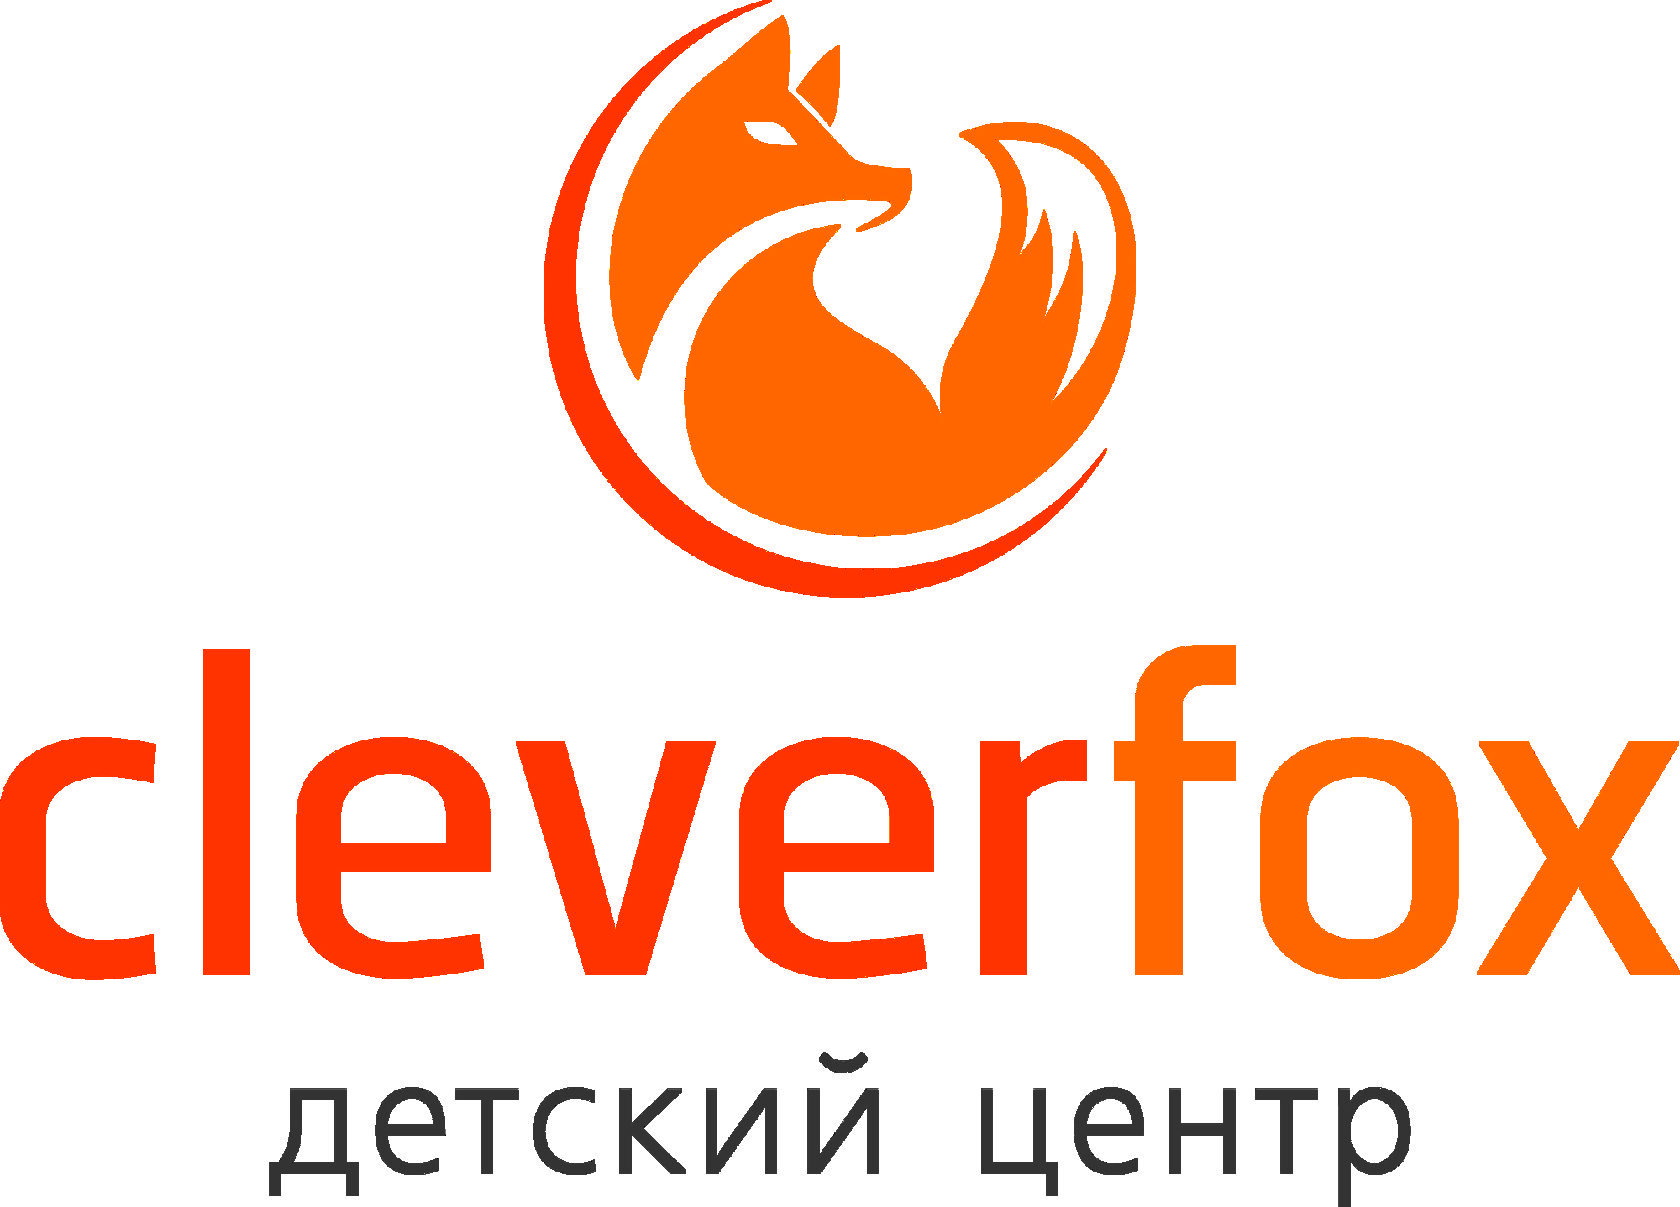 Cleverfox